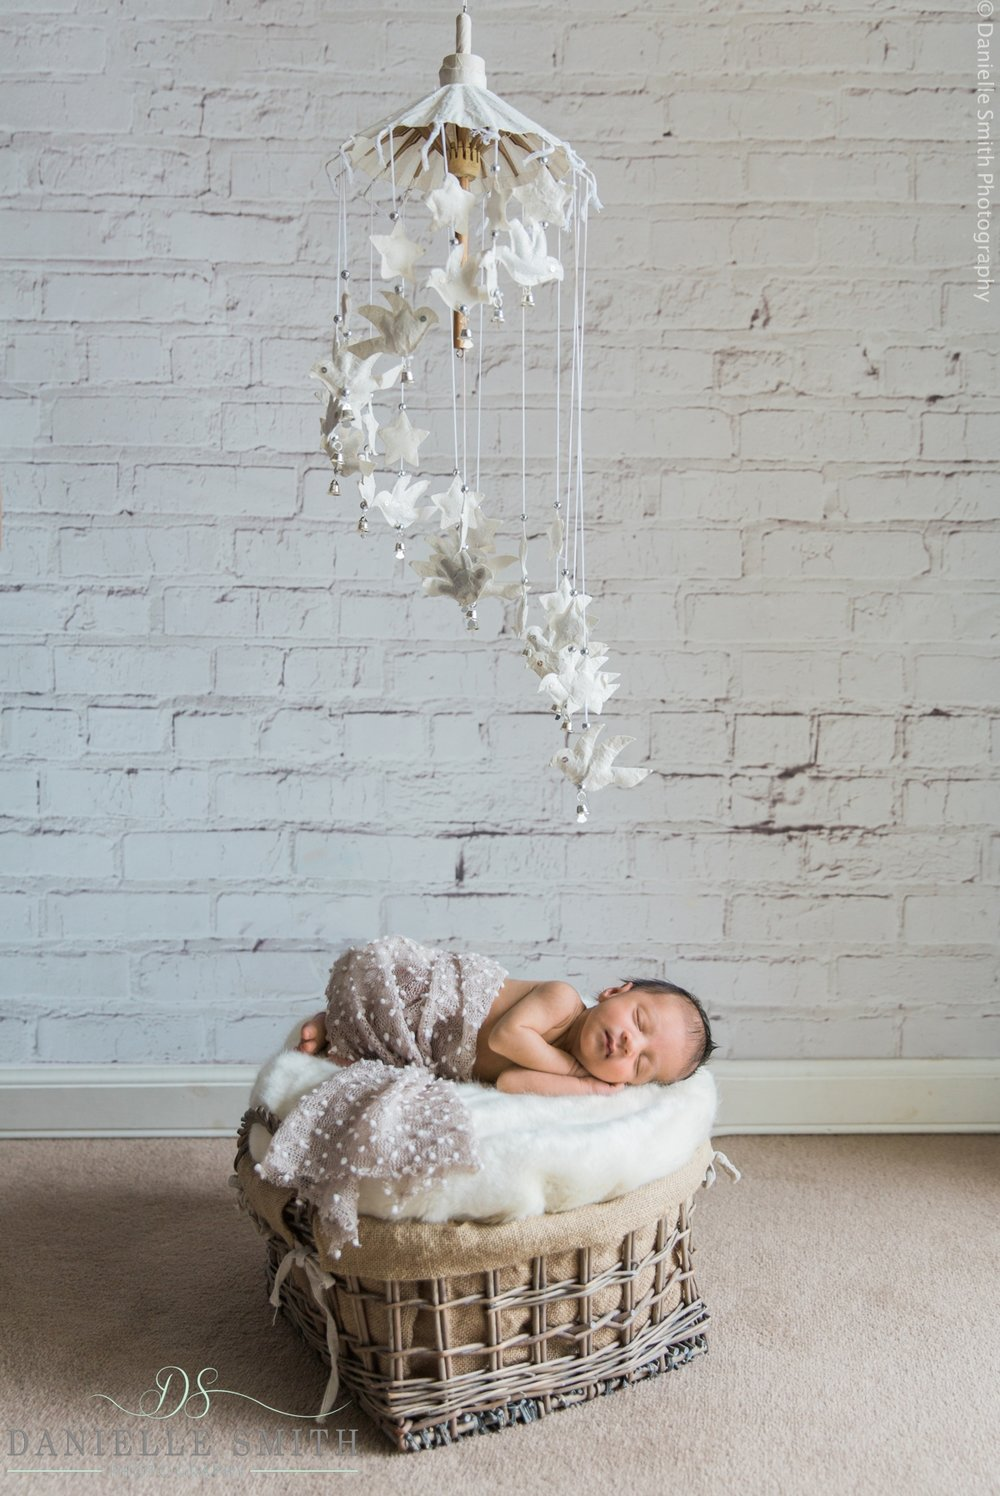 baby asleep in basket with mobile above